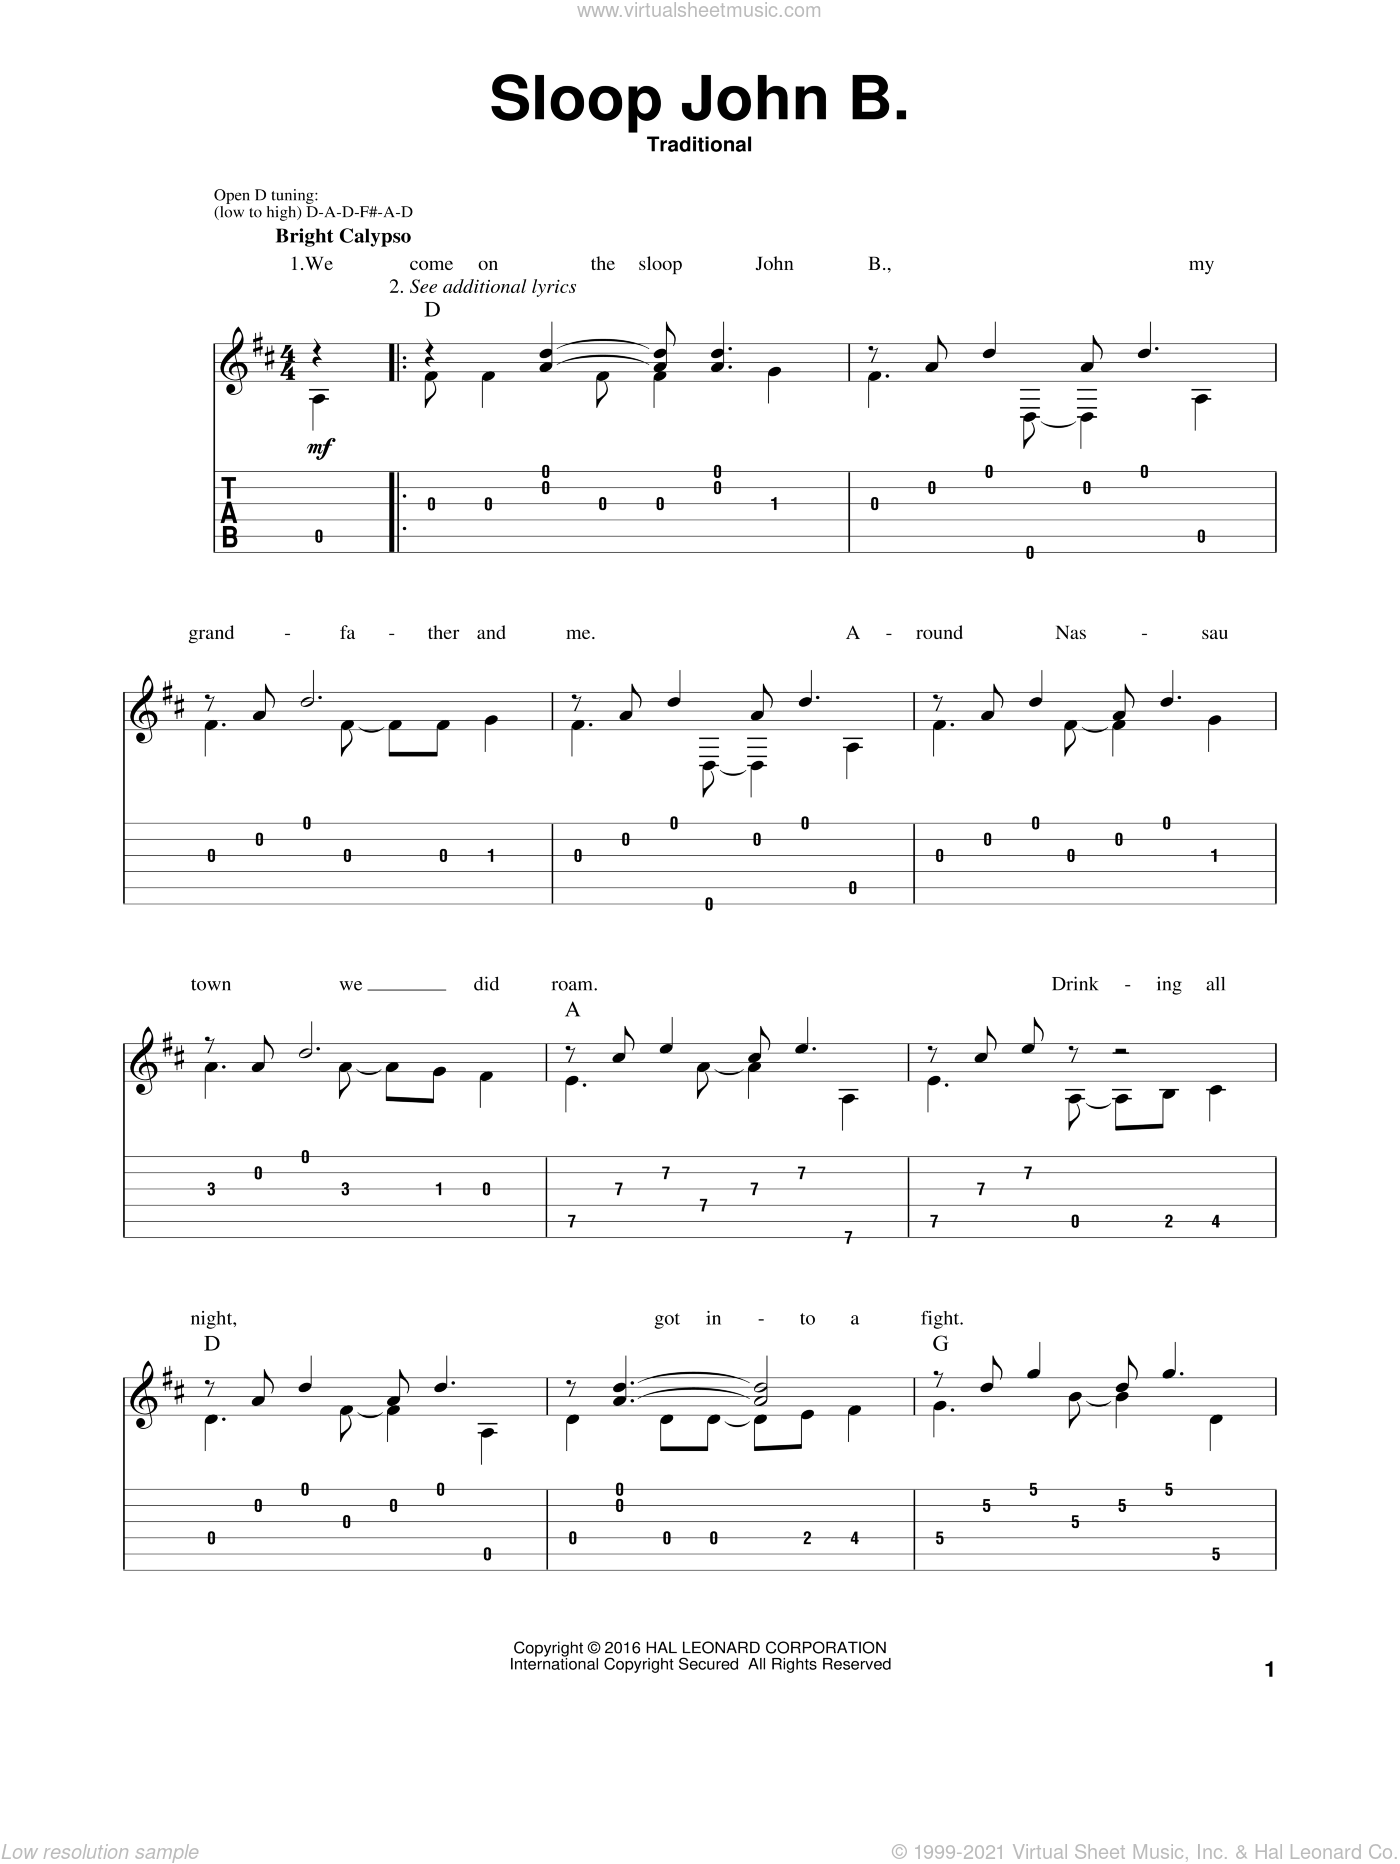 Sloop John B. sheet music for guitar solo. Score Image Preview.